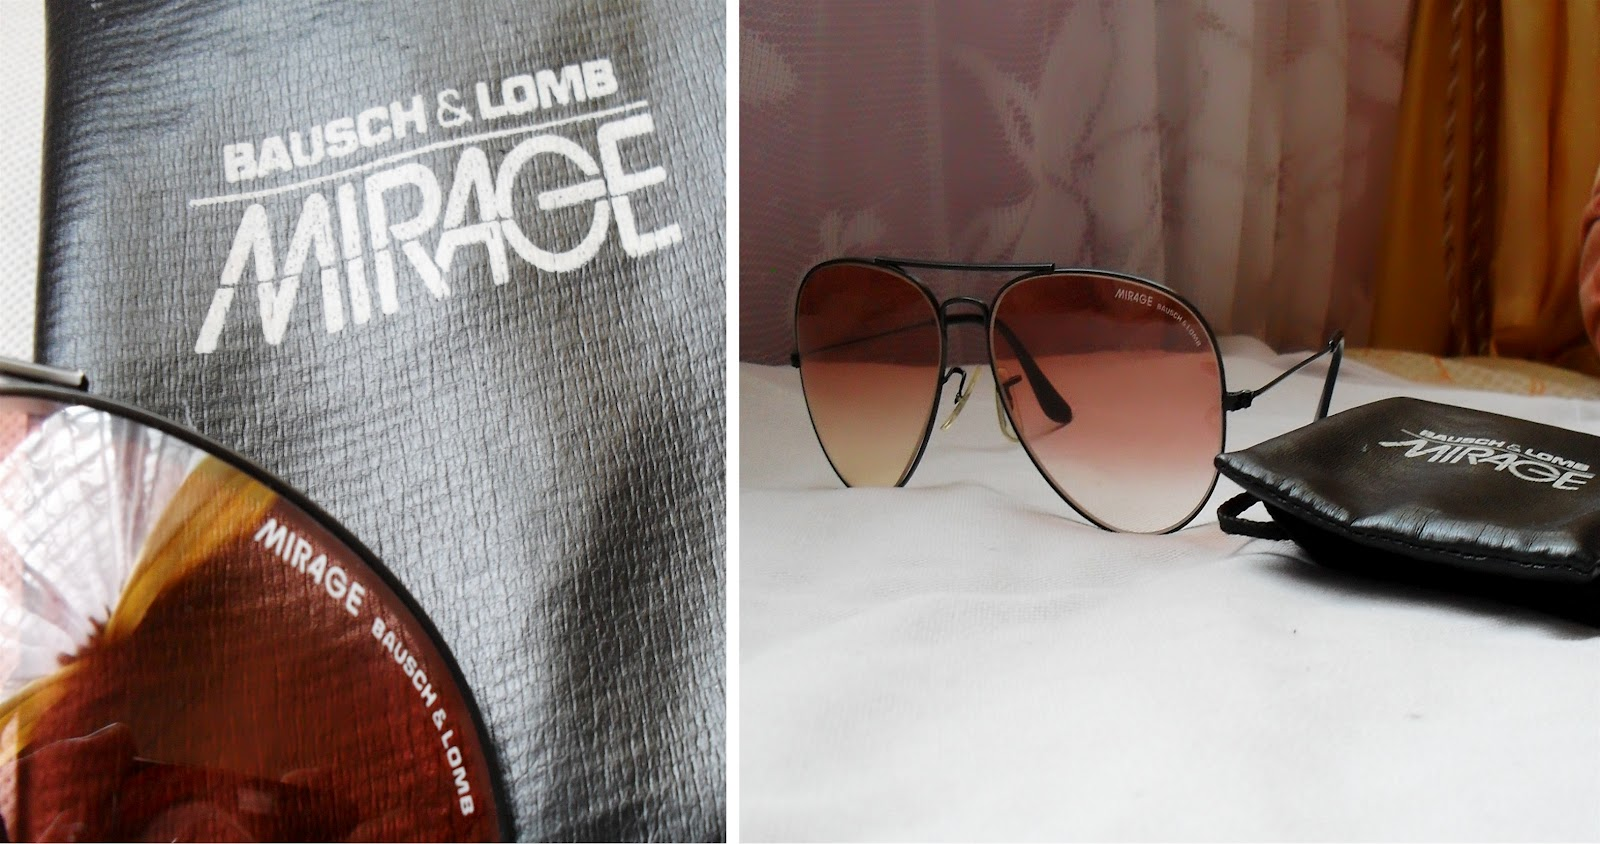 9a7eaa9a435 SOLD OUT ~ VINTAGE MIRAGE BY BAUSCH   LOMB AVIATOR SUNGLASSES ~ VERY RARE  AND HARD TO FIND